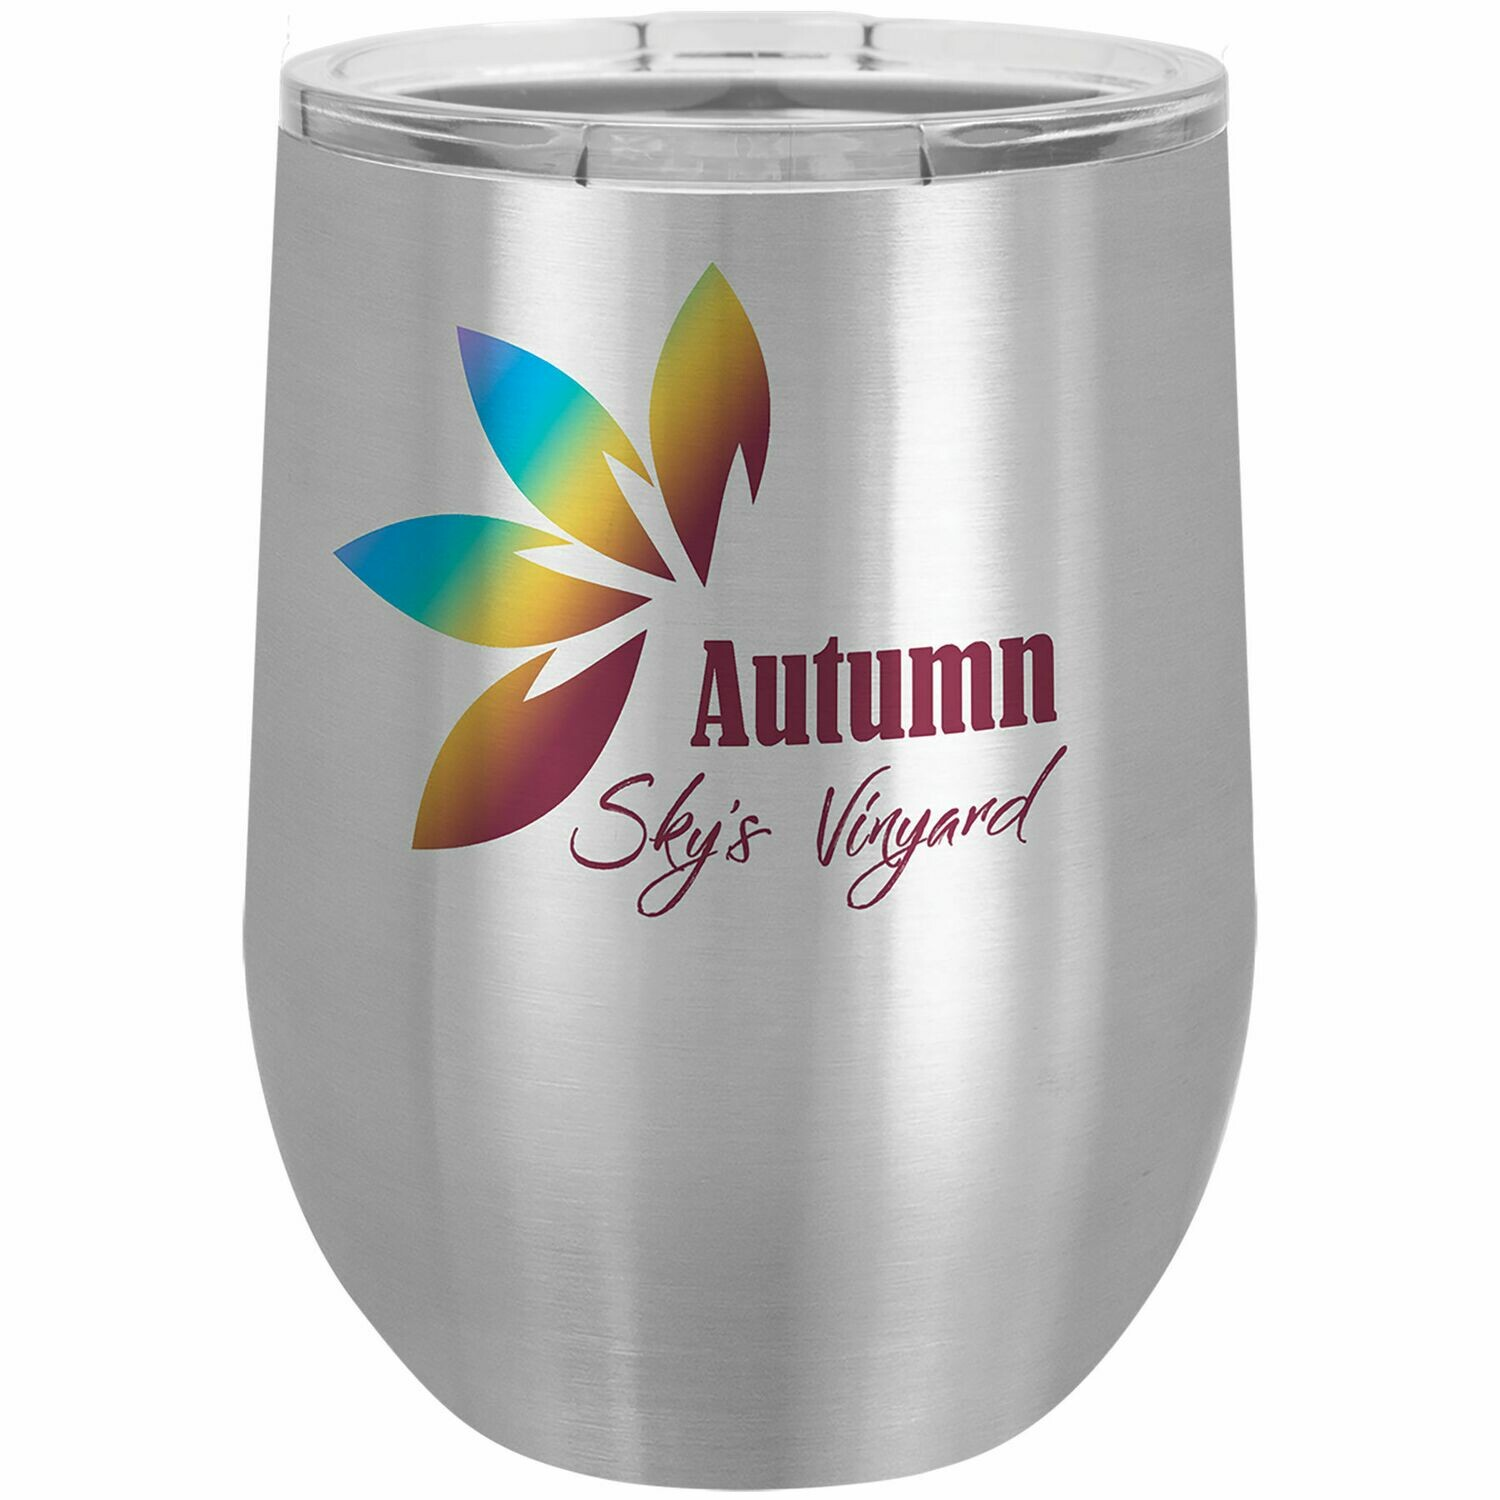 Stainless Steel 12 oz. Polar Camel Stemless Wine Tumbler with Lid